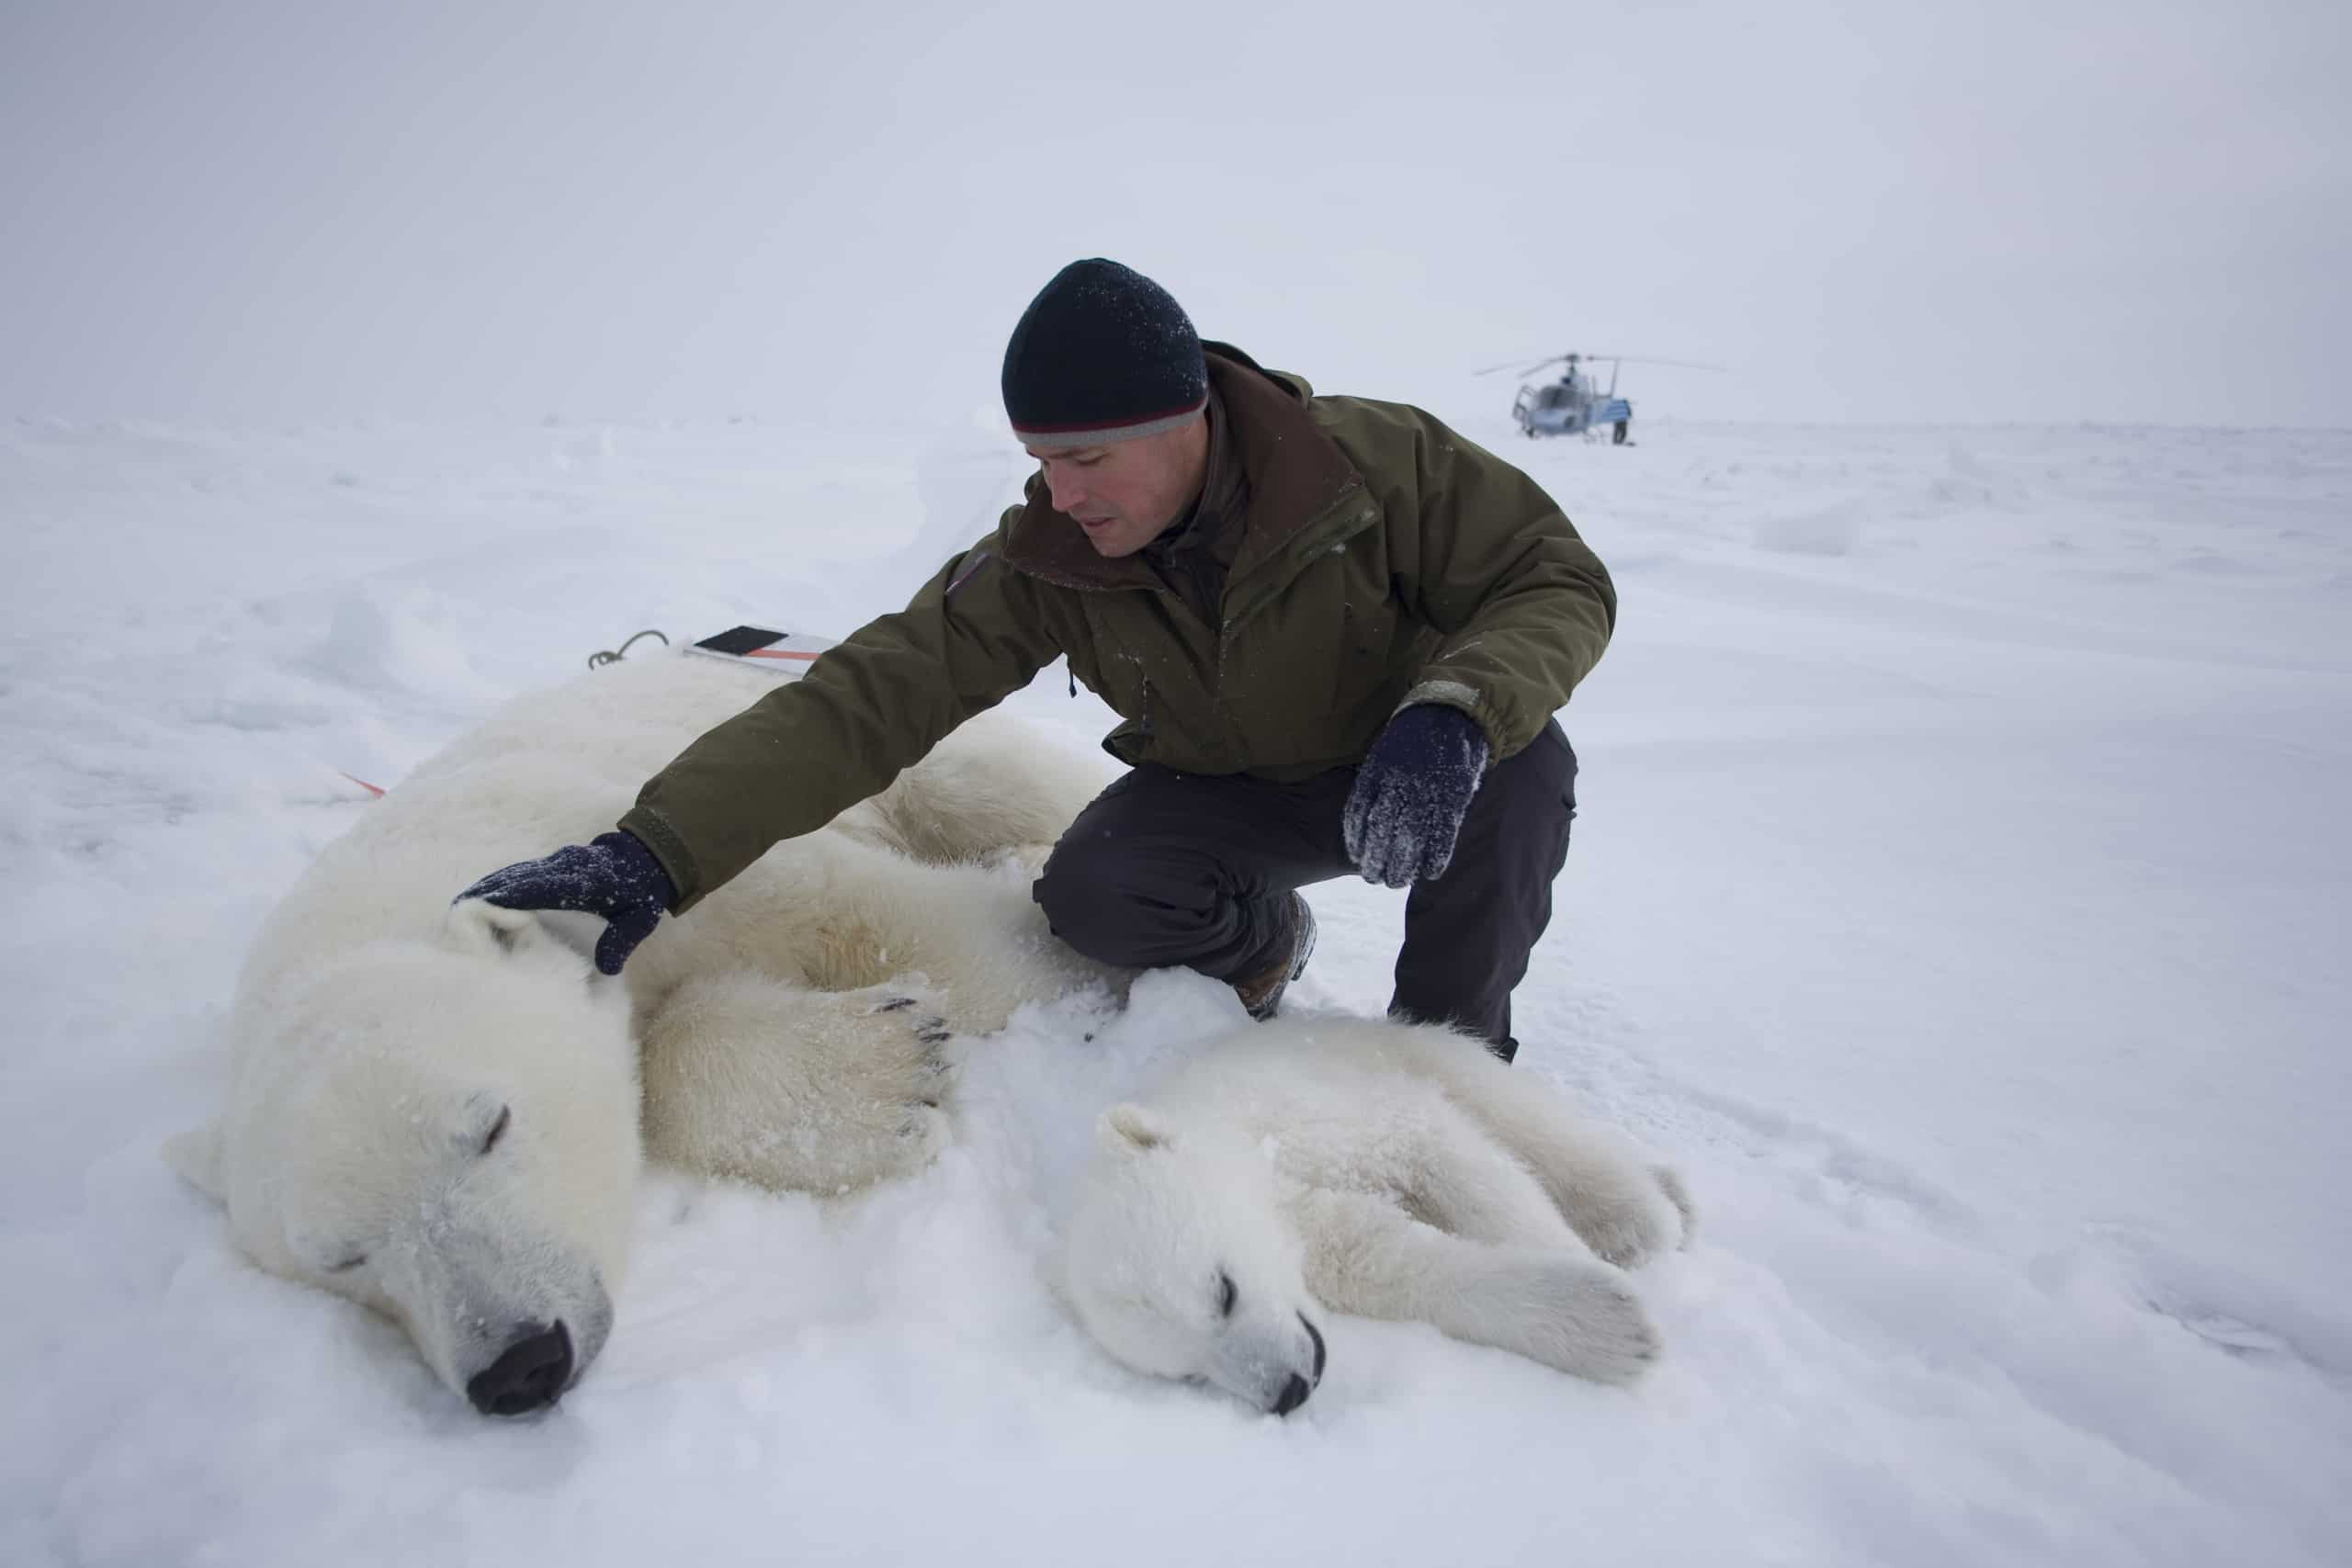 Jeff Corwin with Polar Bears